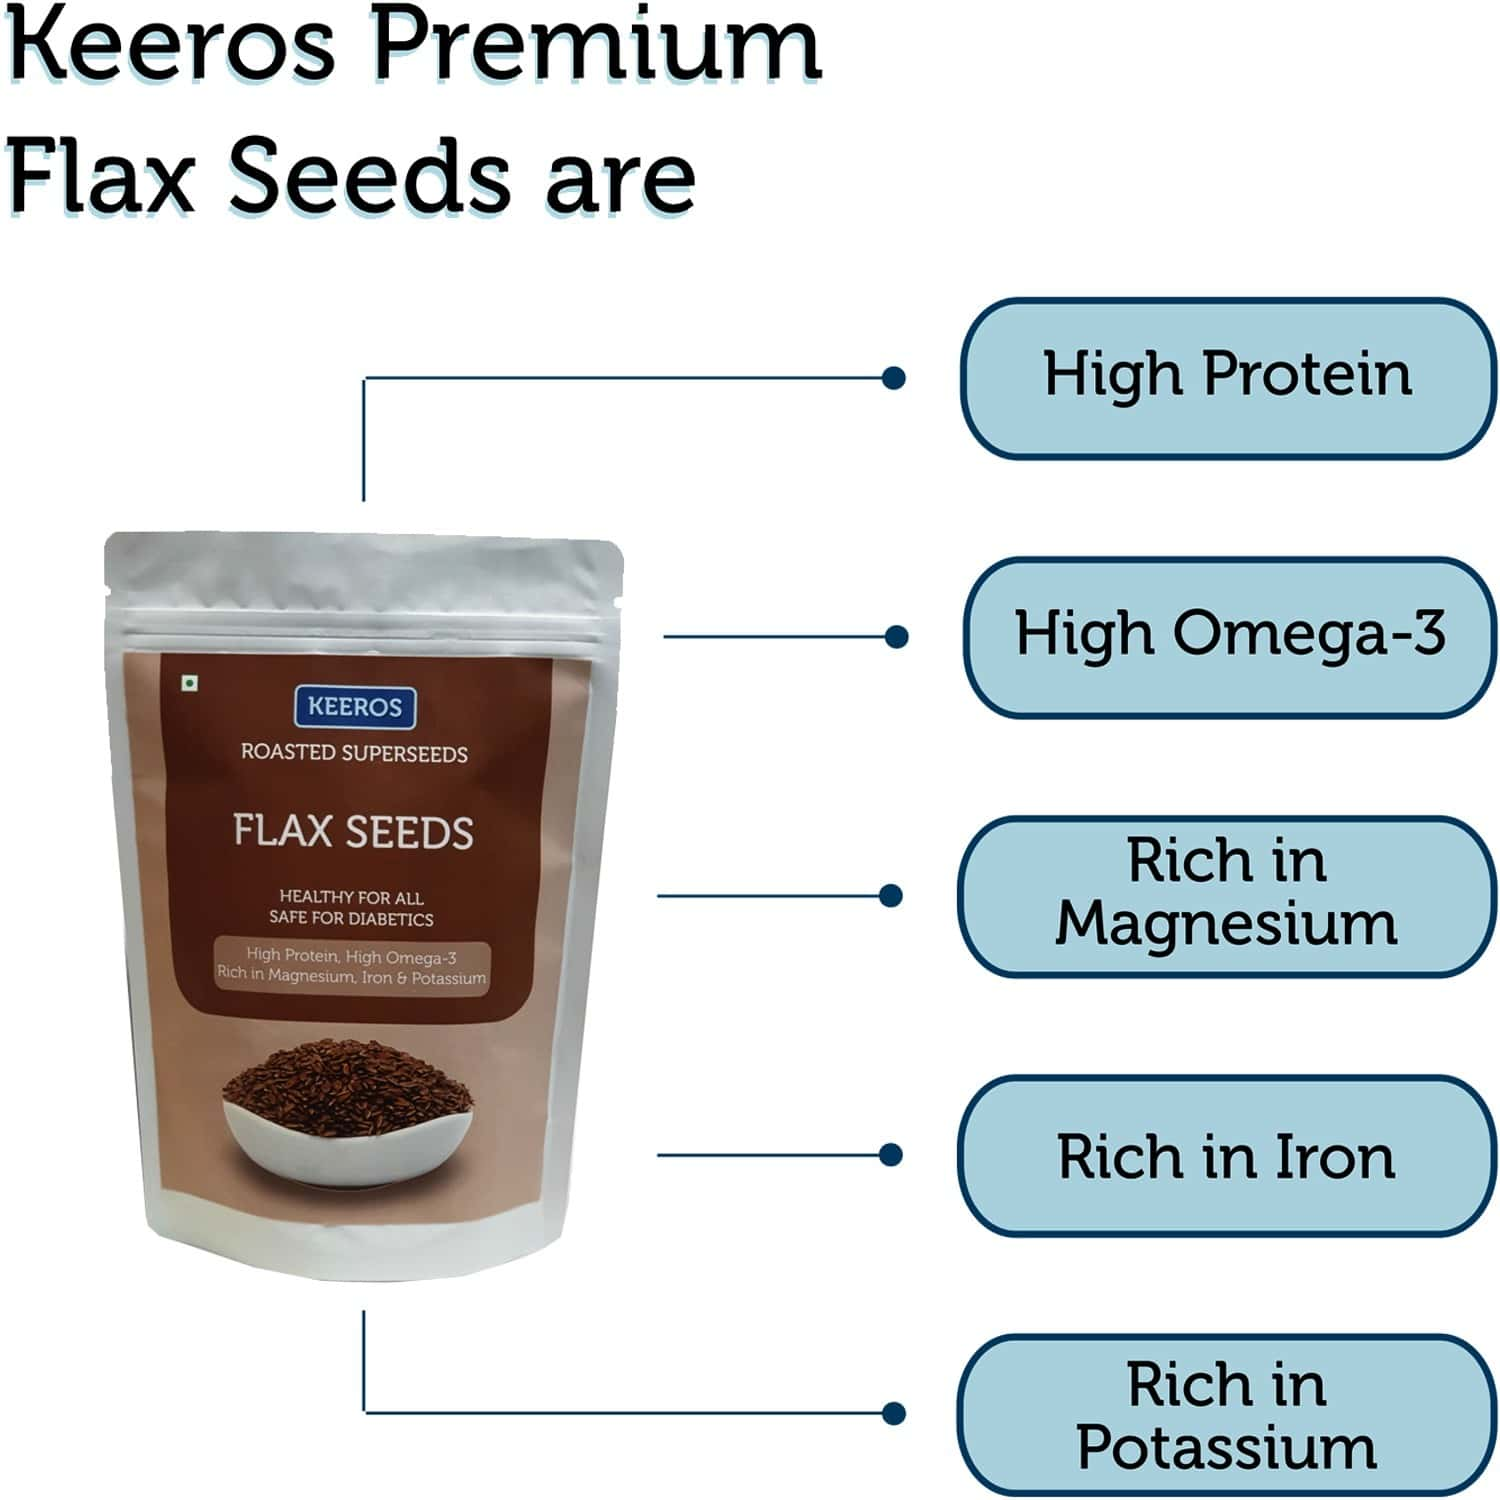 Keeros Roasted Flax Seeds For Eating: High Fibre, Omega-3 & Protein-rich, Ready To Eat Premium Super Seeds For Weight Loss & Boosting Immunity |400g